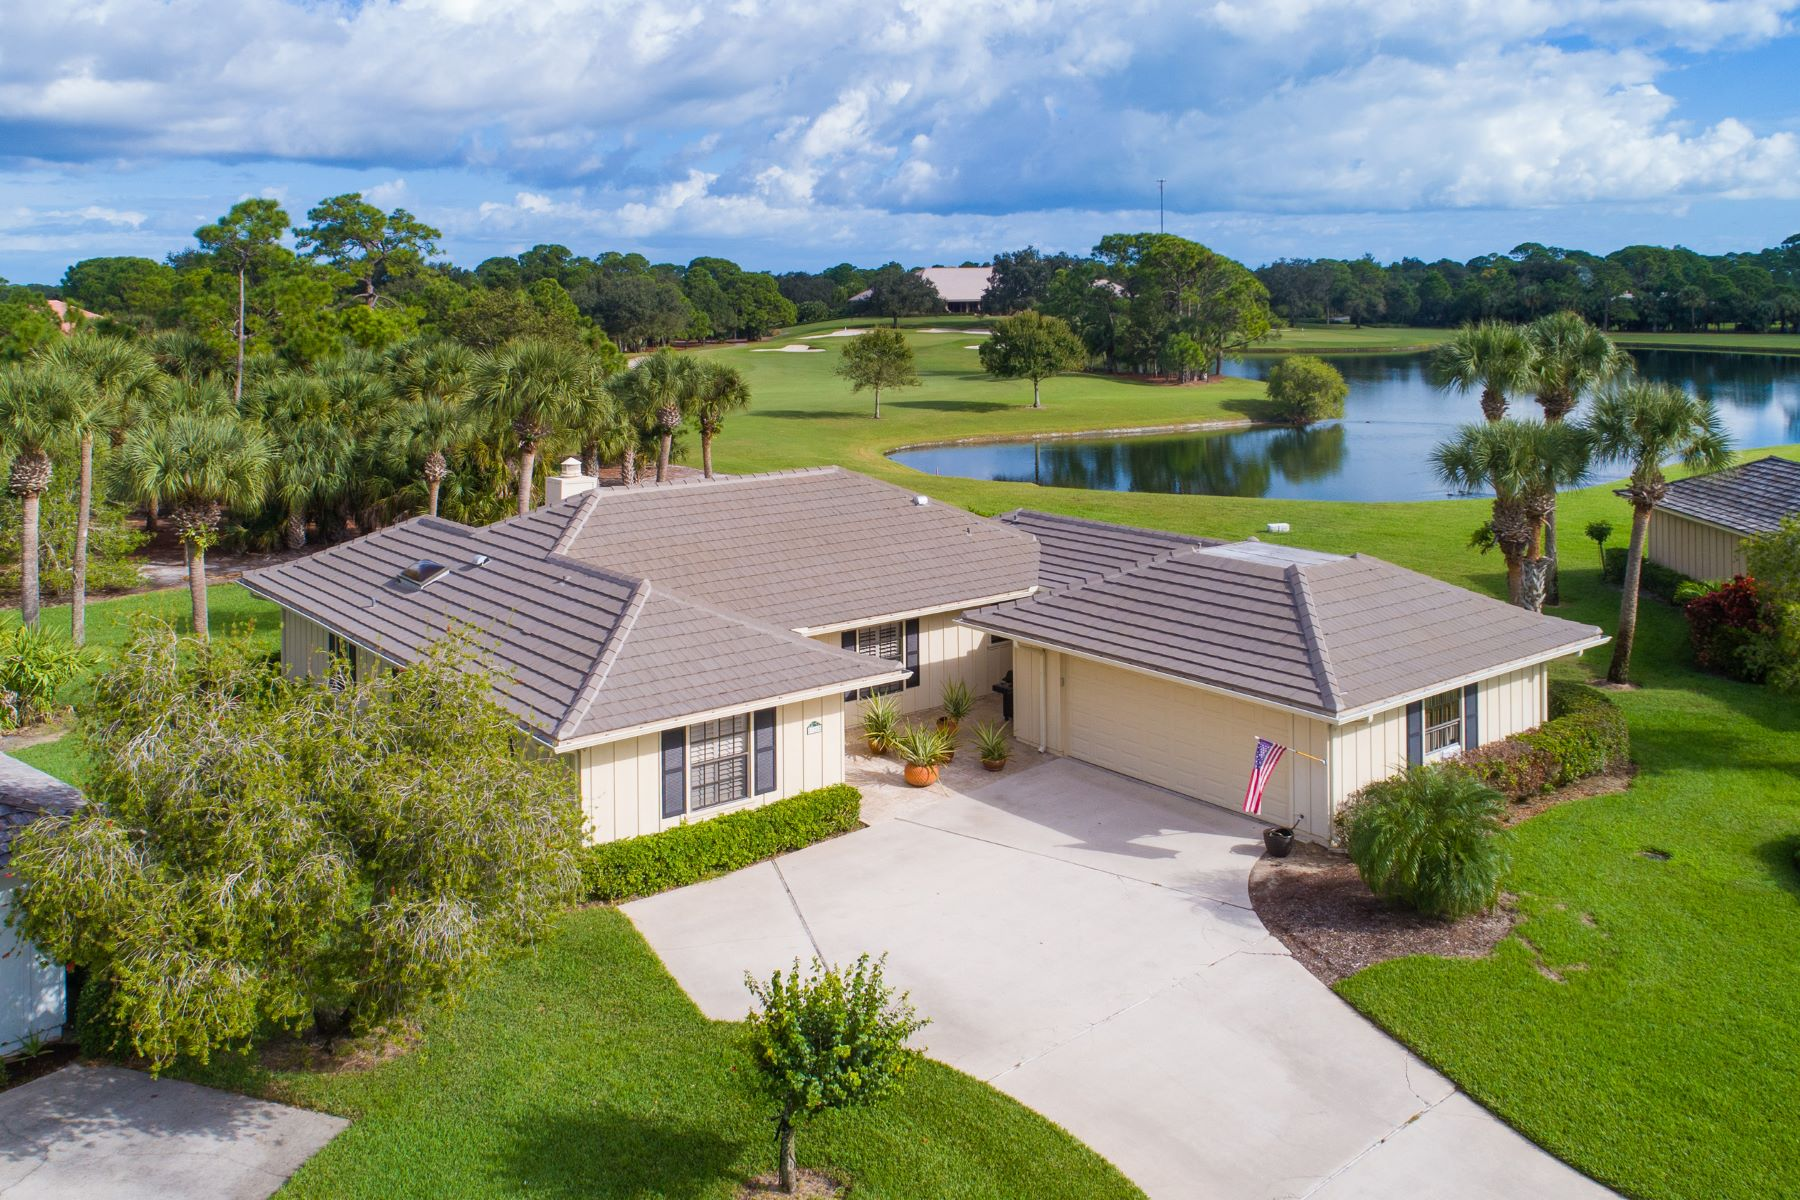 Casa para uma família para Venda às Superb Golf Villa With Panoramic Golf and Lake Views 120 Prestwick Circle Vero Beach, Florida 32967 Estados Unidos